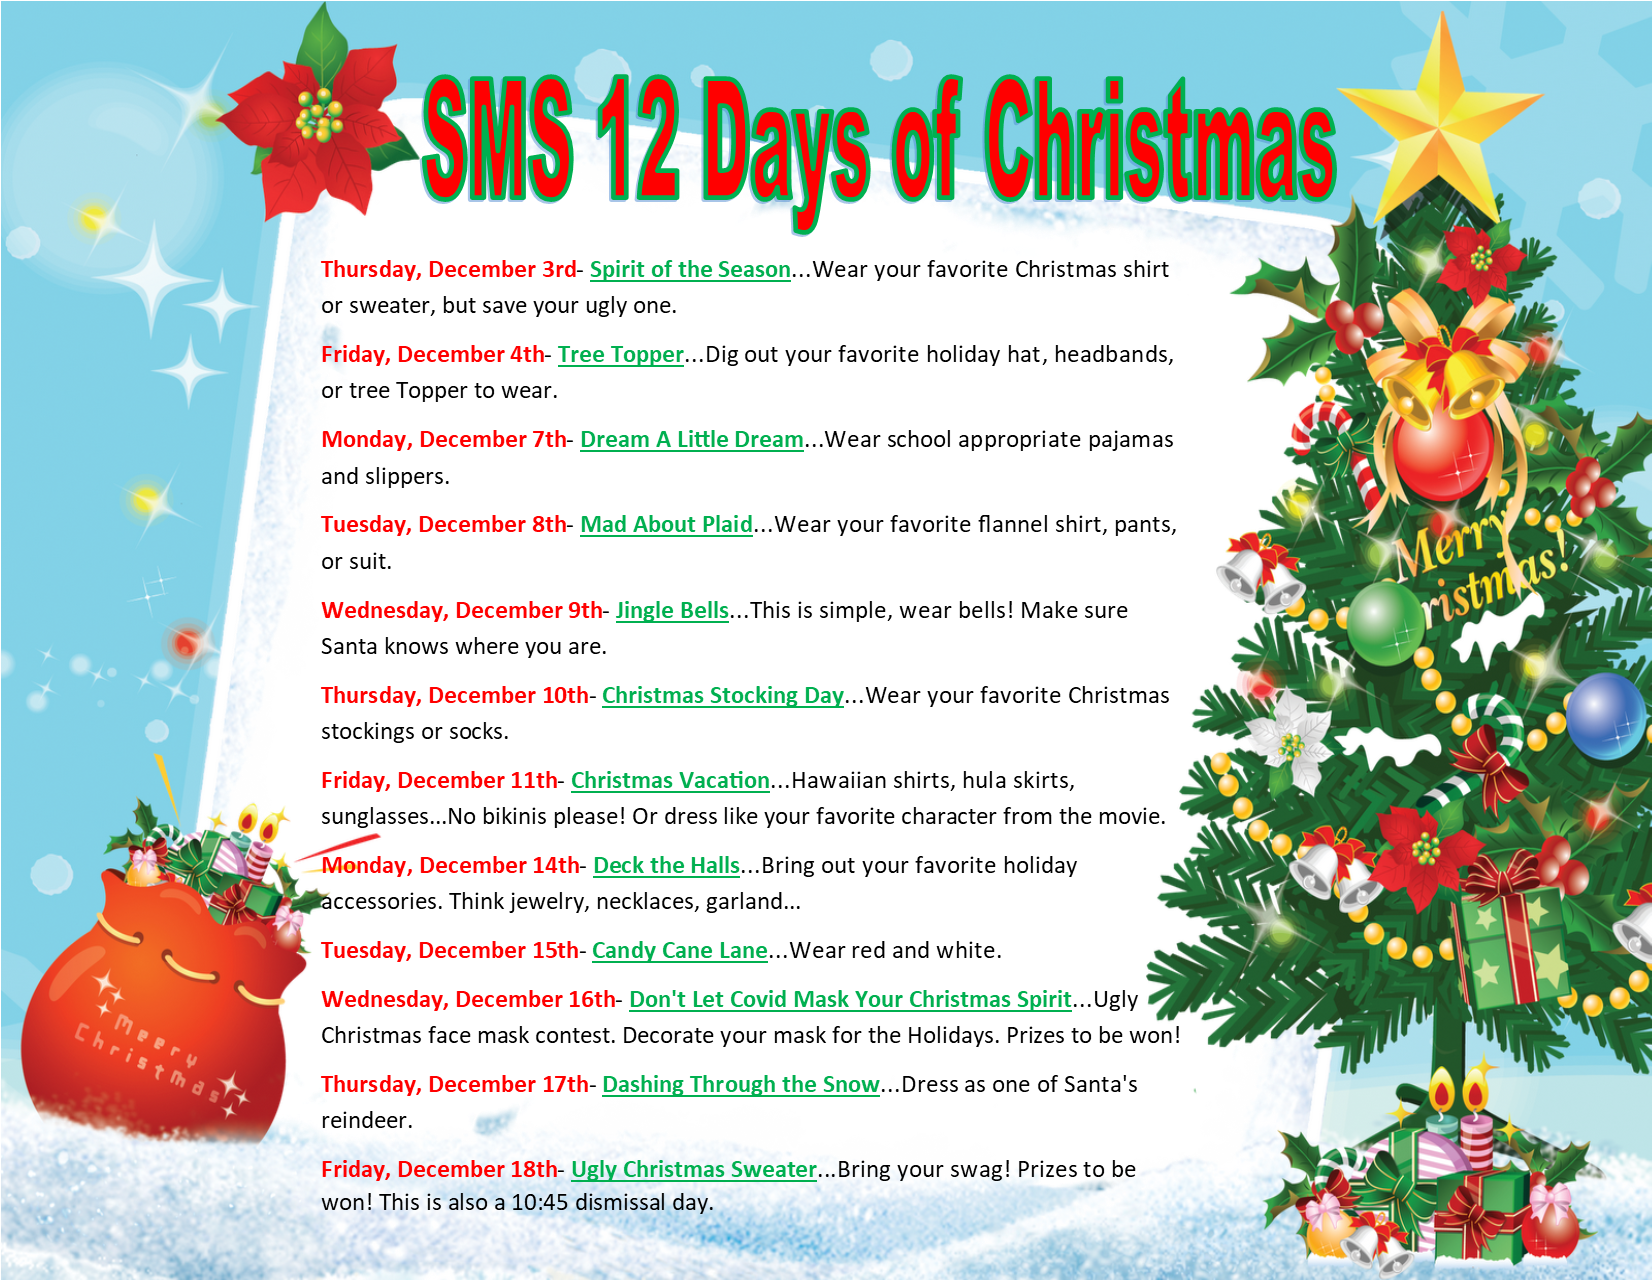 Join us in celebrating the SMS 12 Days of Christmas!